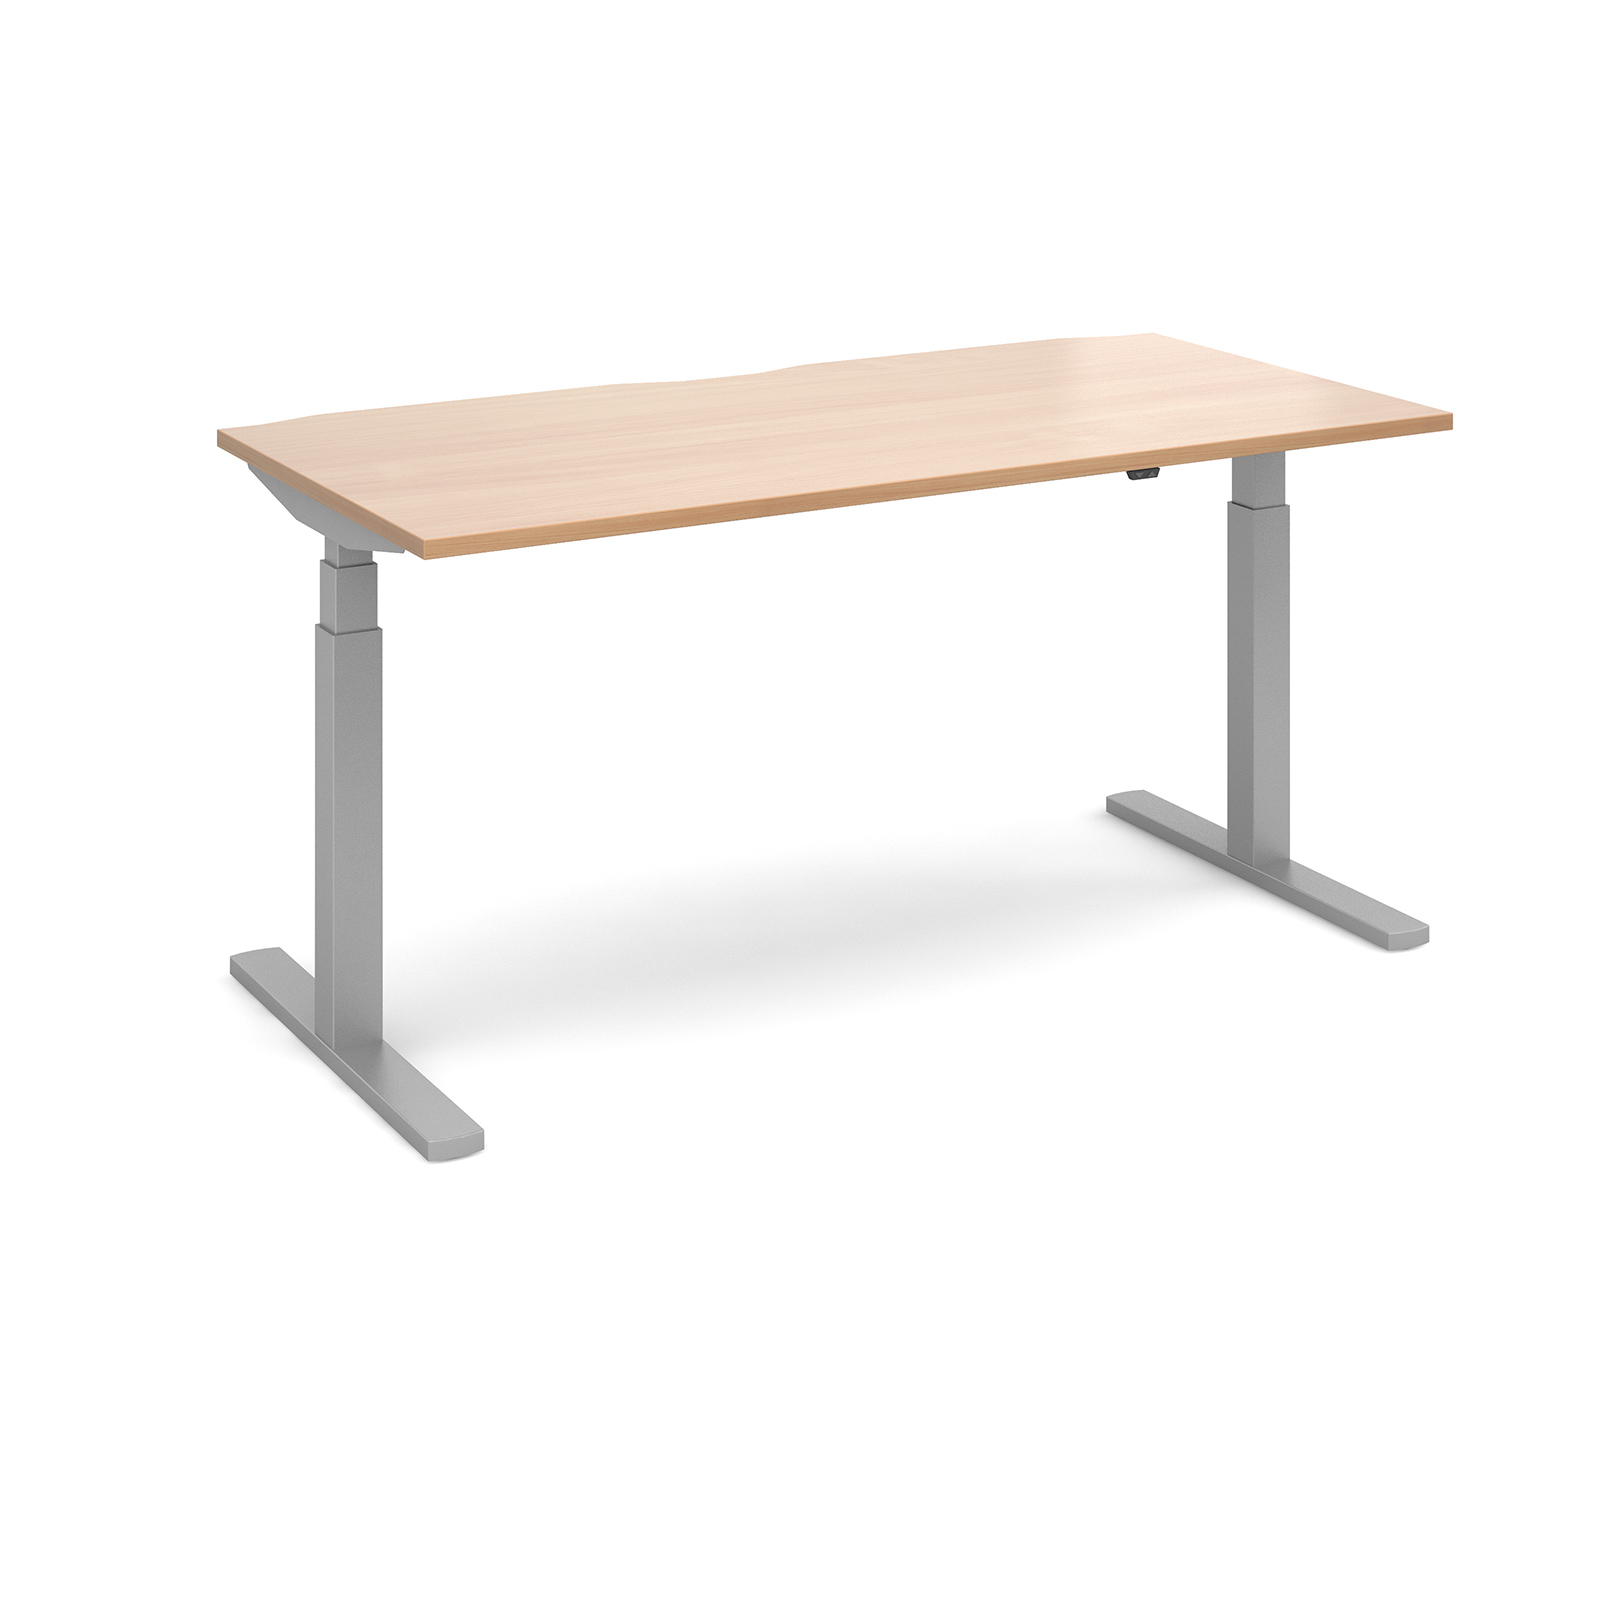 Elev8 Touch Straight Sit-Stand Desk 1600mm x 800mm - Silver Frame, Beech Top